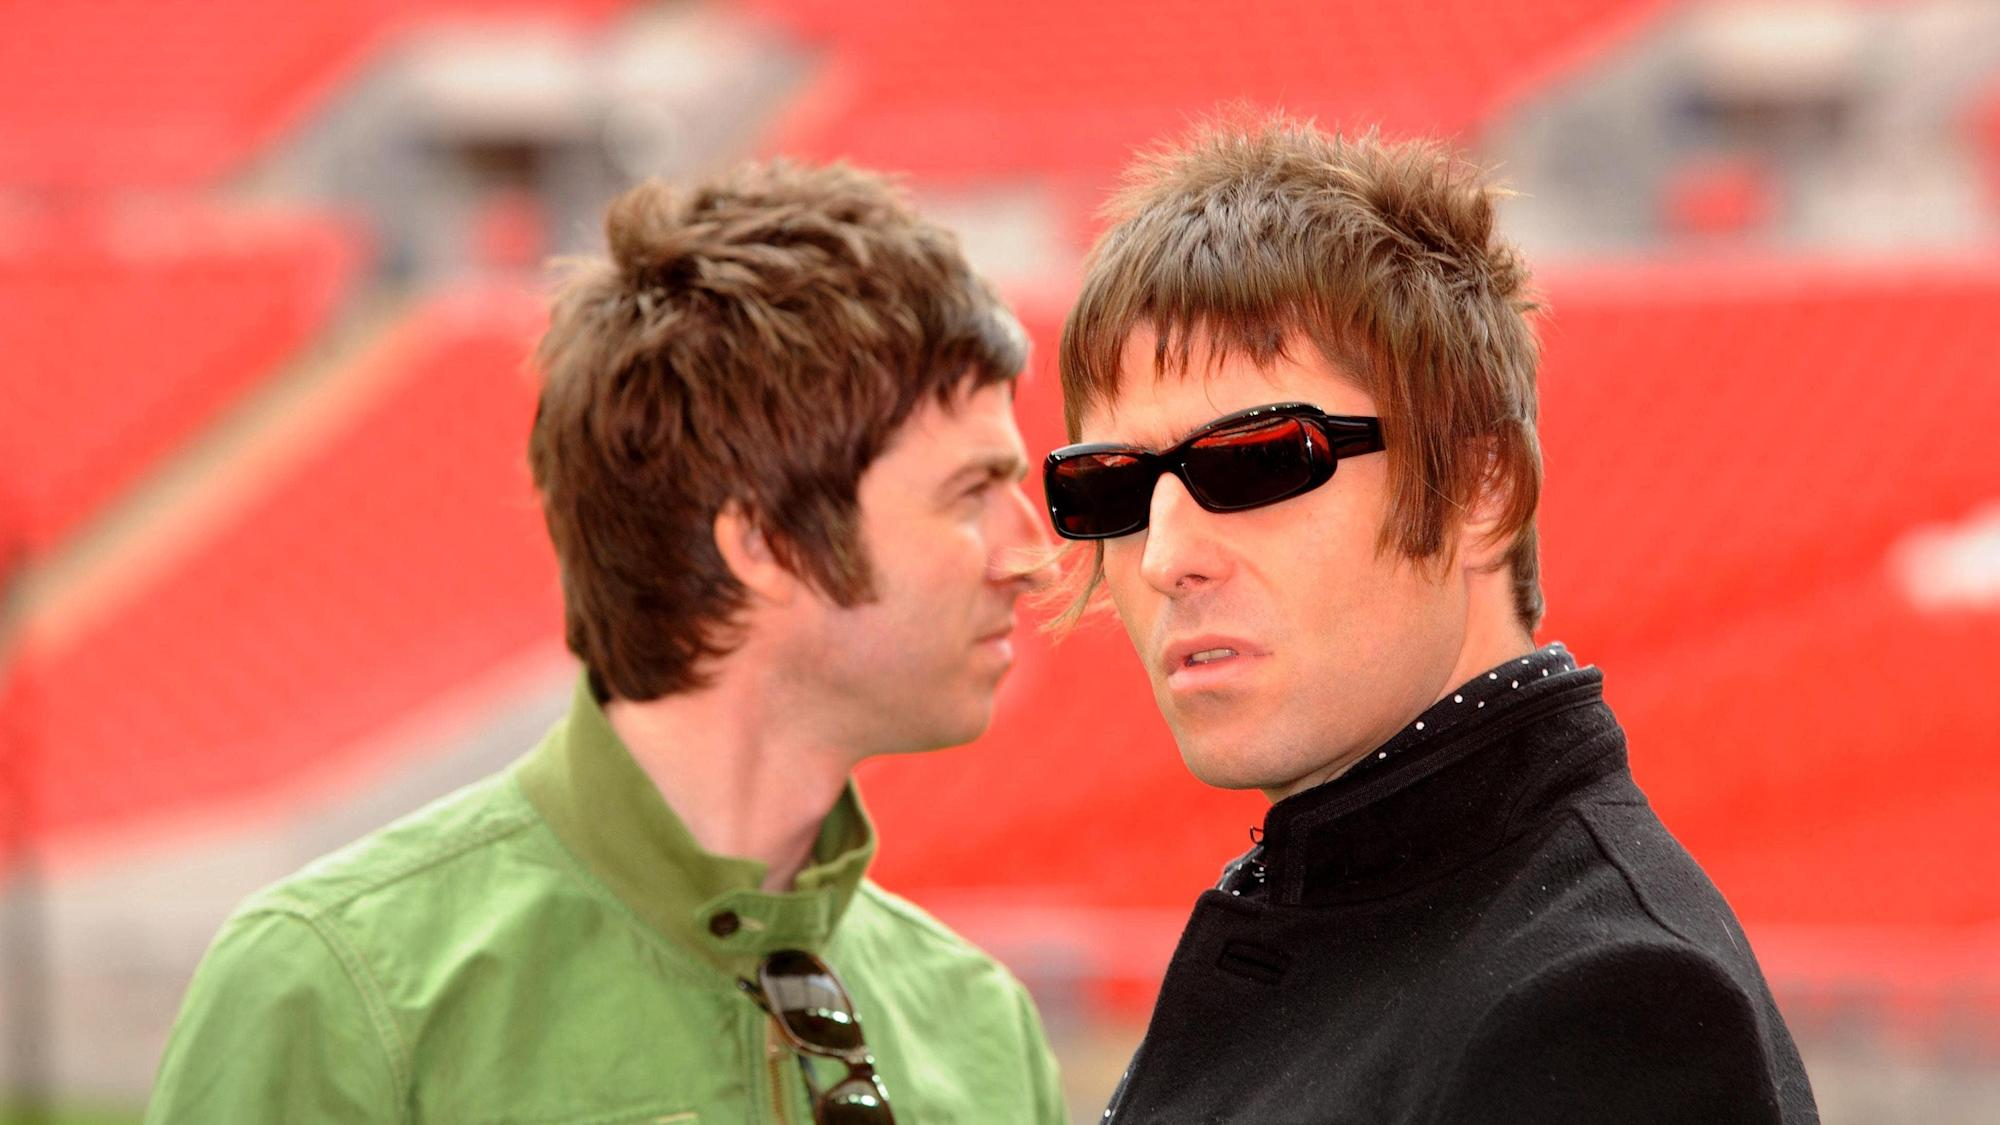 Oasis' 1994 contract asking for 'sober' staff and 'quality lager' to be sold